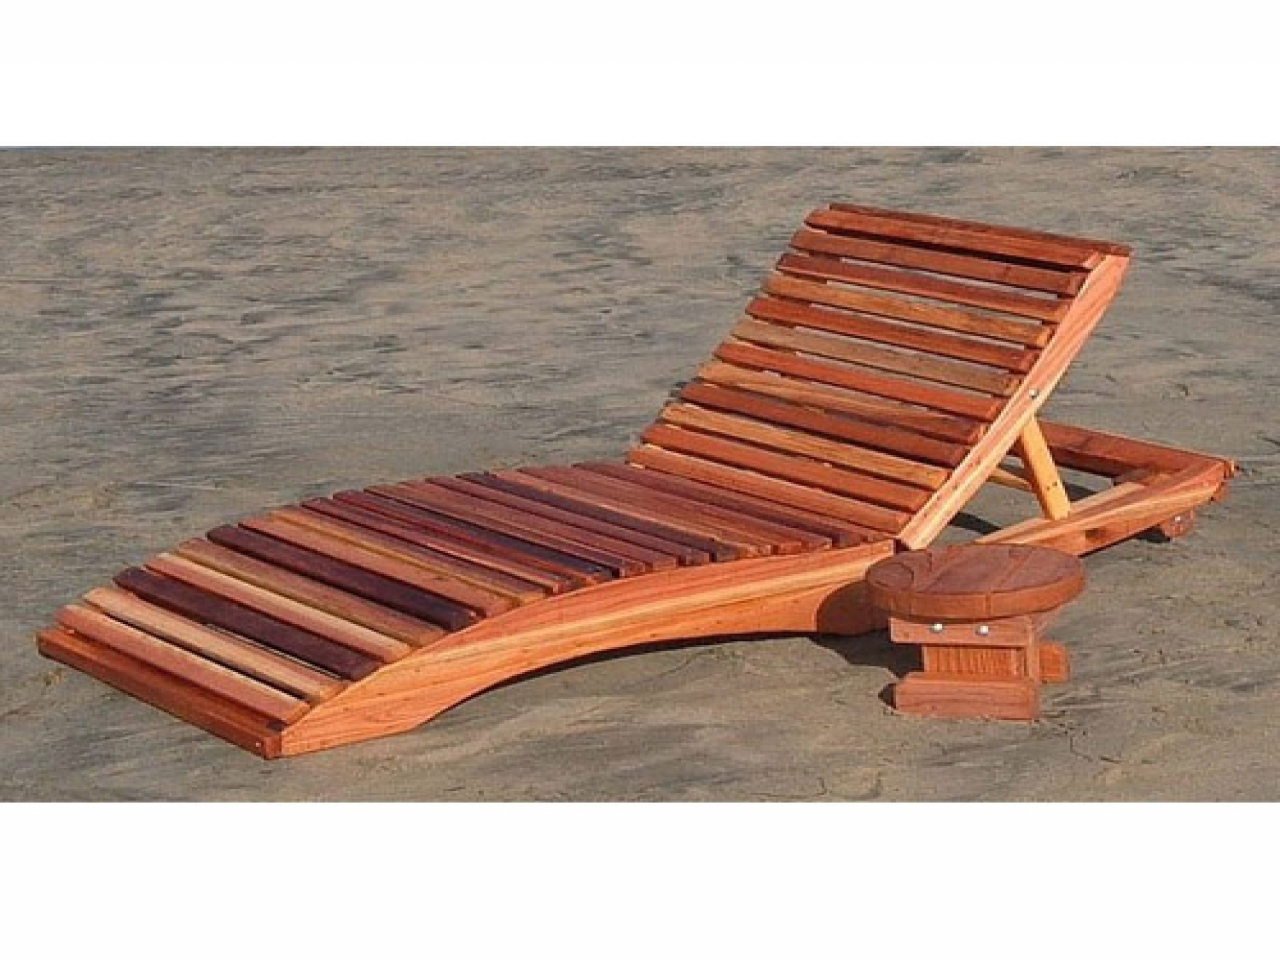 Wooden Outdoor Chaise Lounge Chairs Intended For Trendy Wood Outdoor Chaise Lounge Chairs • Lounge Chairs Ideas (View 11 of 15)